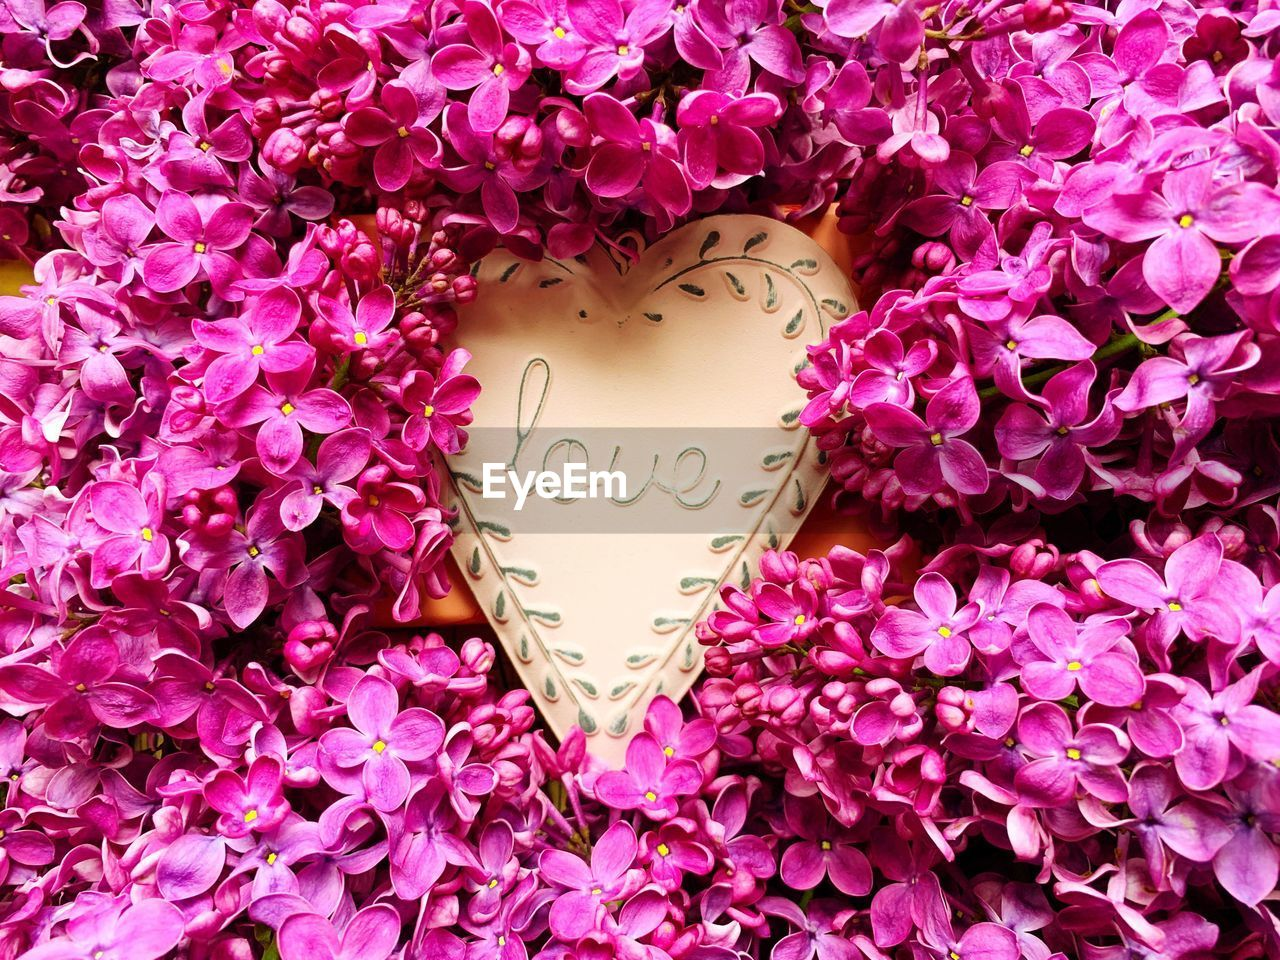 flower, positive emotion, emotion, text, flowering plant, love, plant, close-up, western script, heart shape, no people, beauty in nature, pink color, freshness, communication, nature, fragility, event, vulnerability, message, outdoors, flower head, valentine's day - holiday, purple